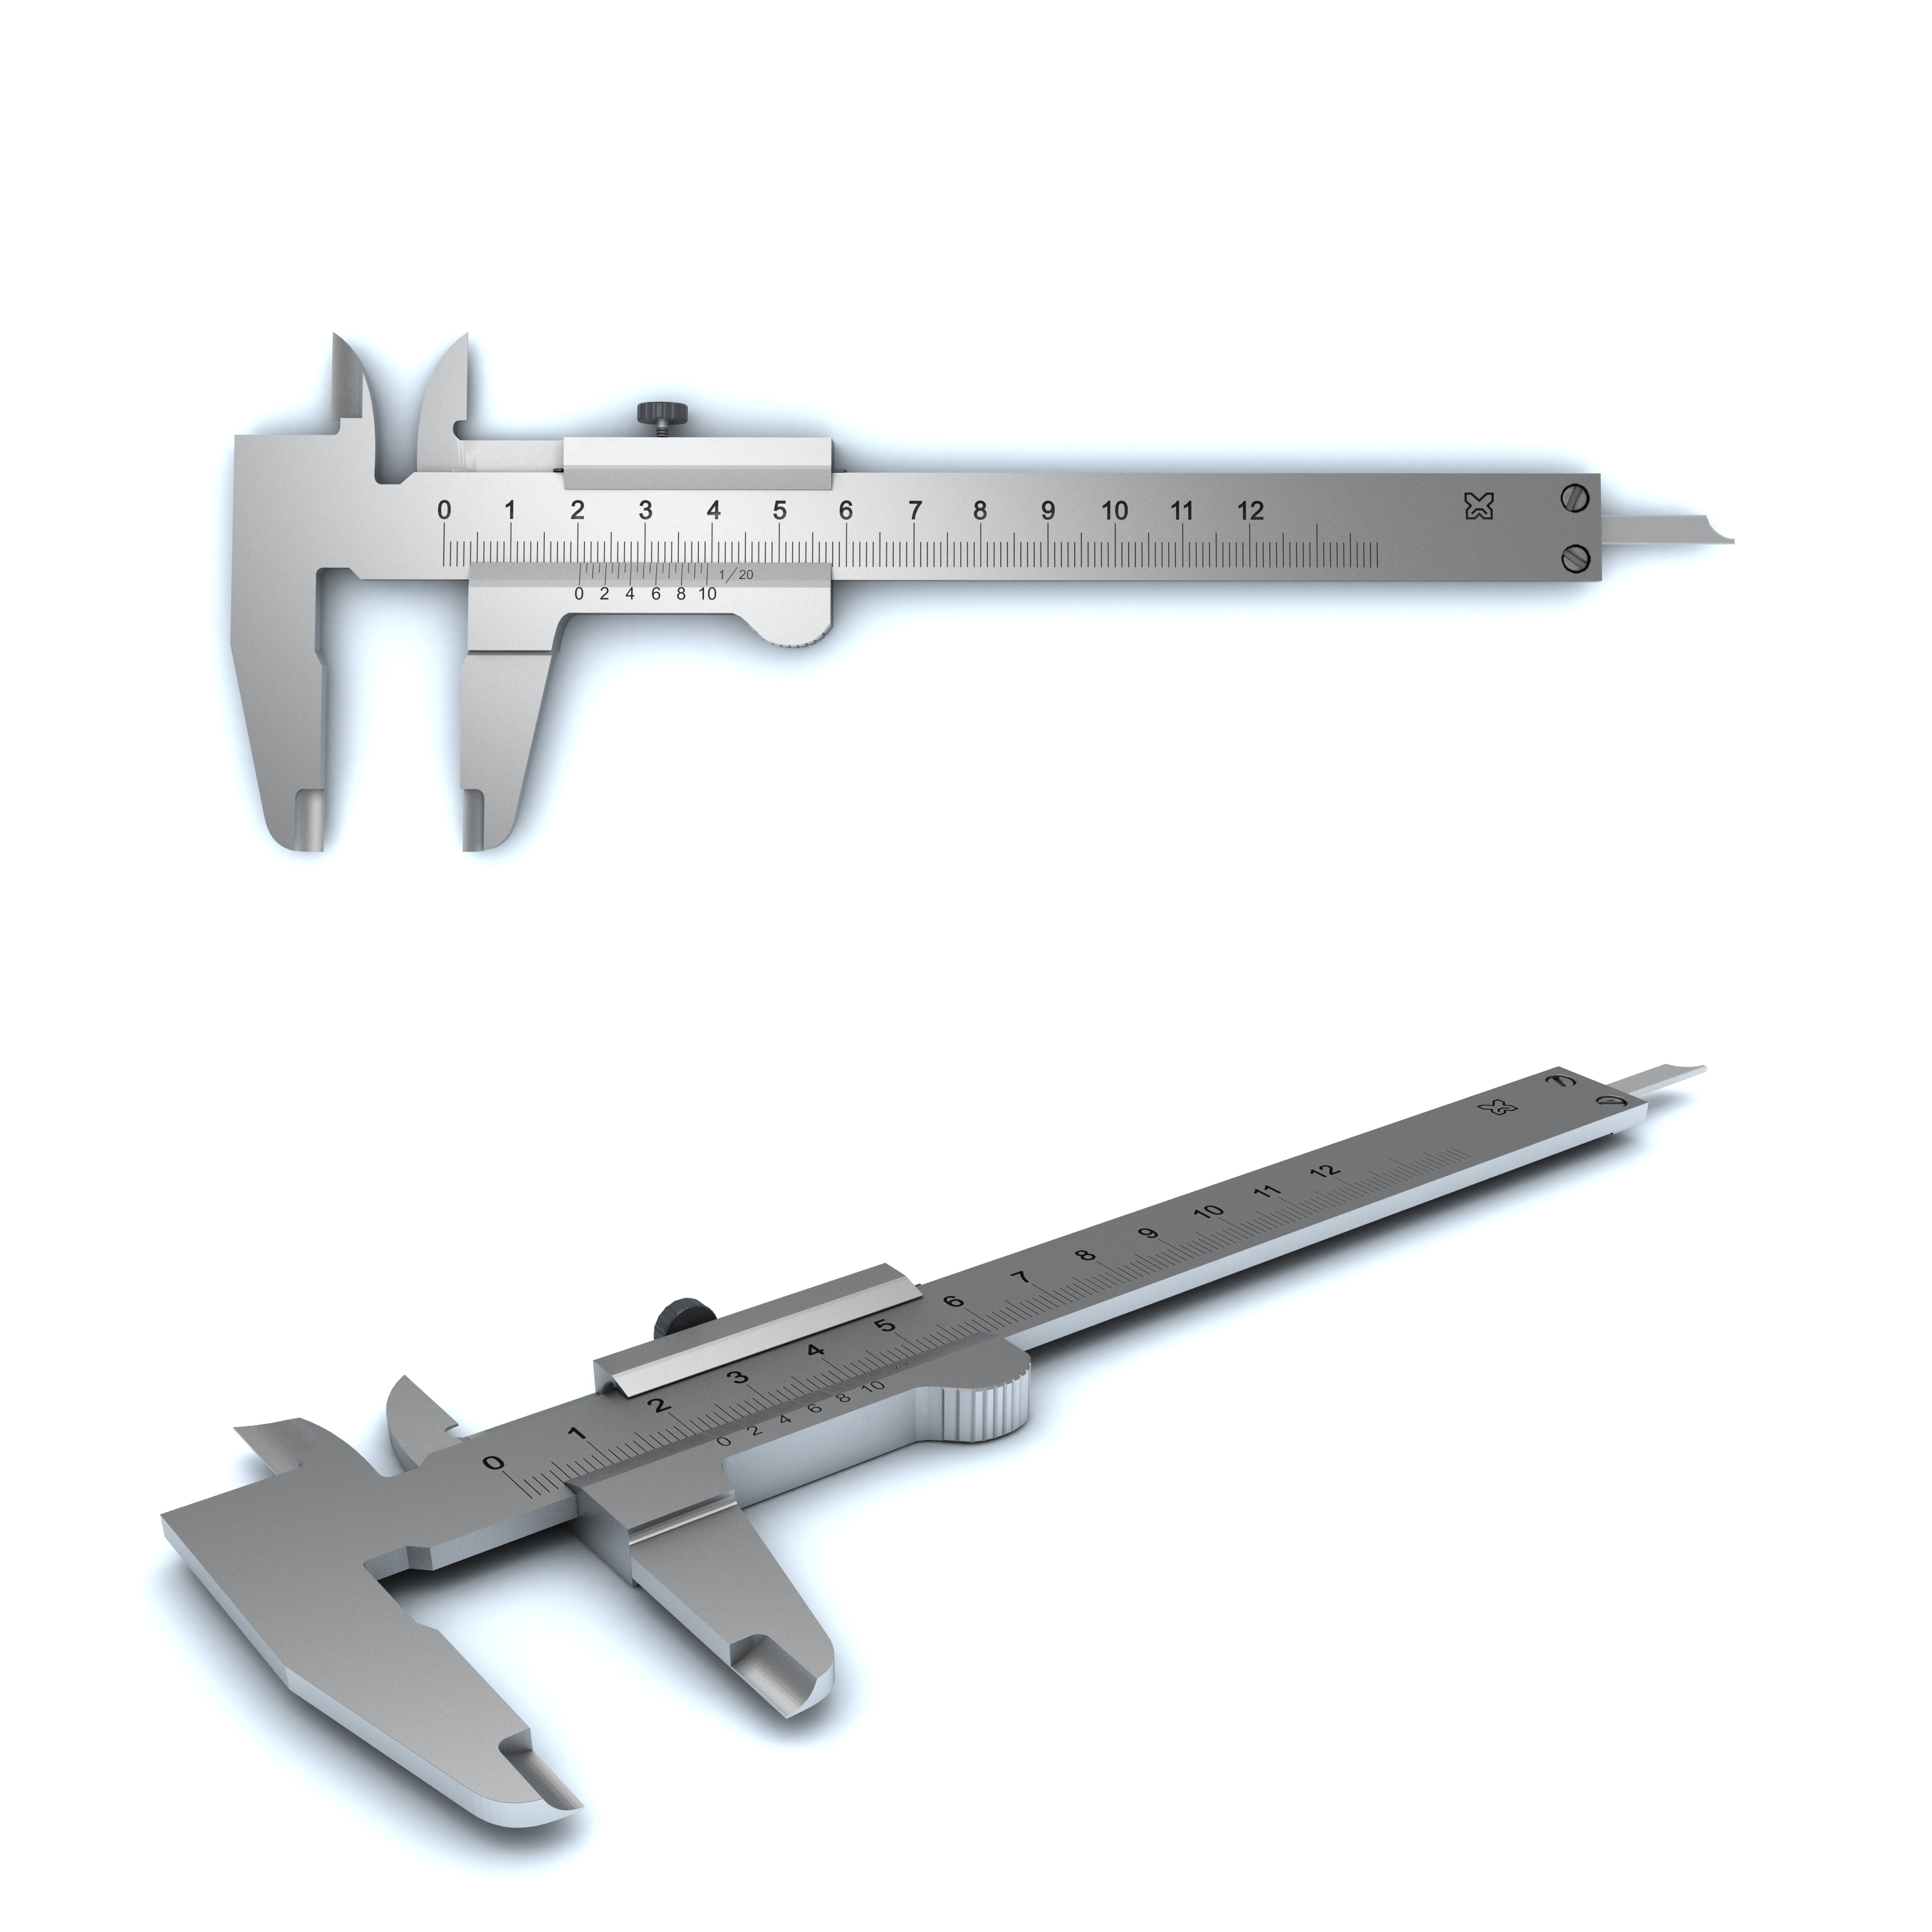 vernier caliper - 3DOcean Item for Sale